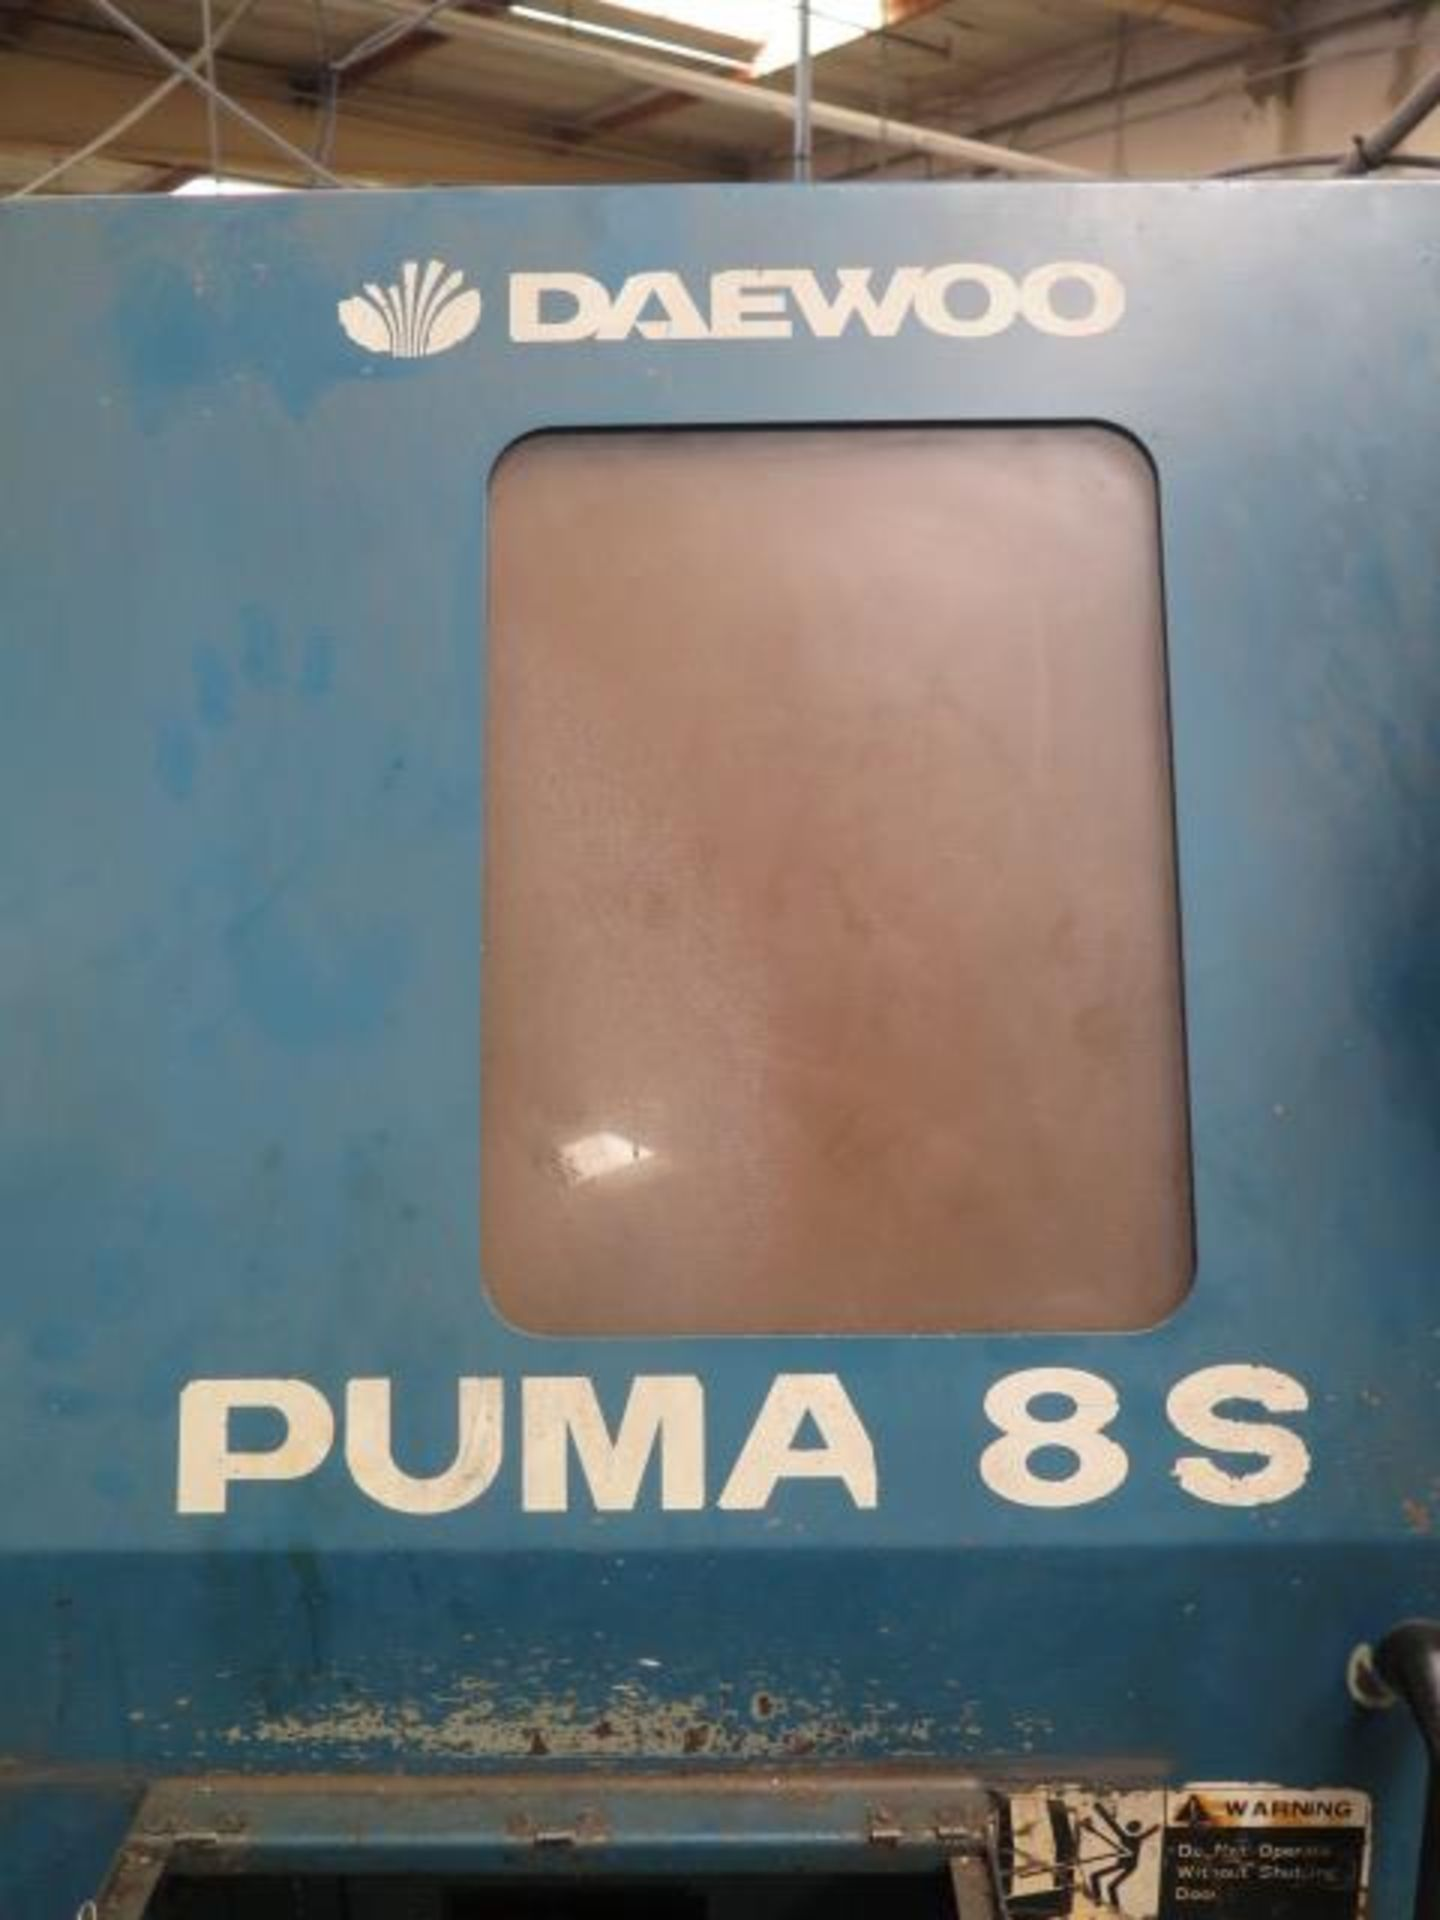 1996 Daewoo PUMA 8S CNC Turning Center s/n PM8S0500 w/ Mits Controls, Tool Presetter, SOLD AS IS - Image 3 of 14